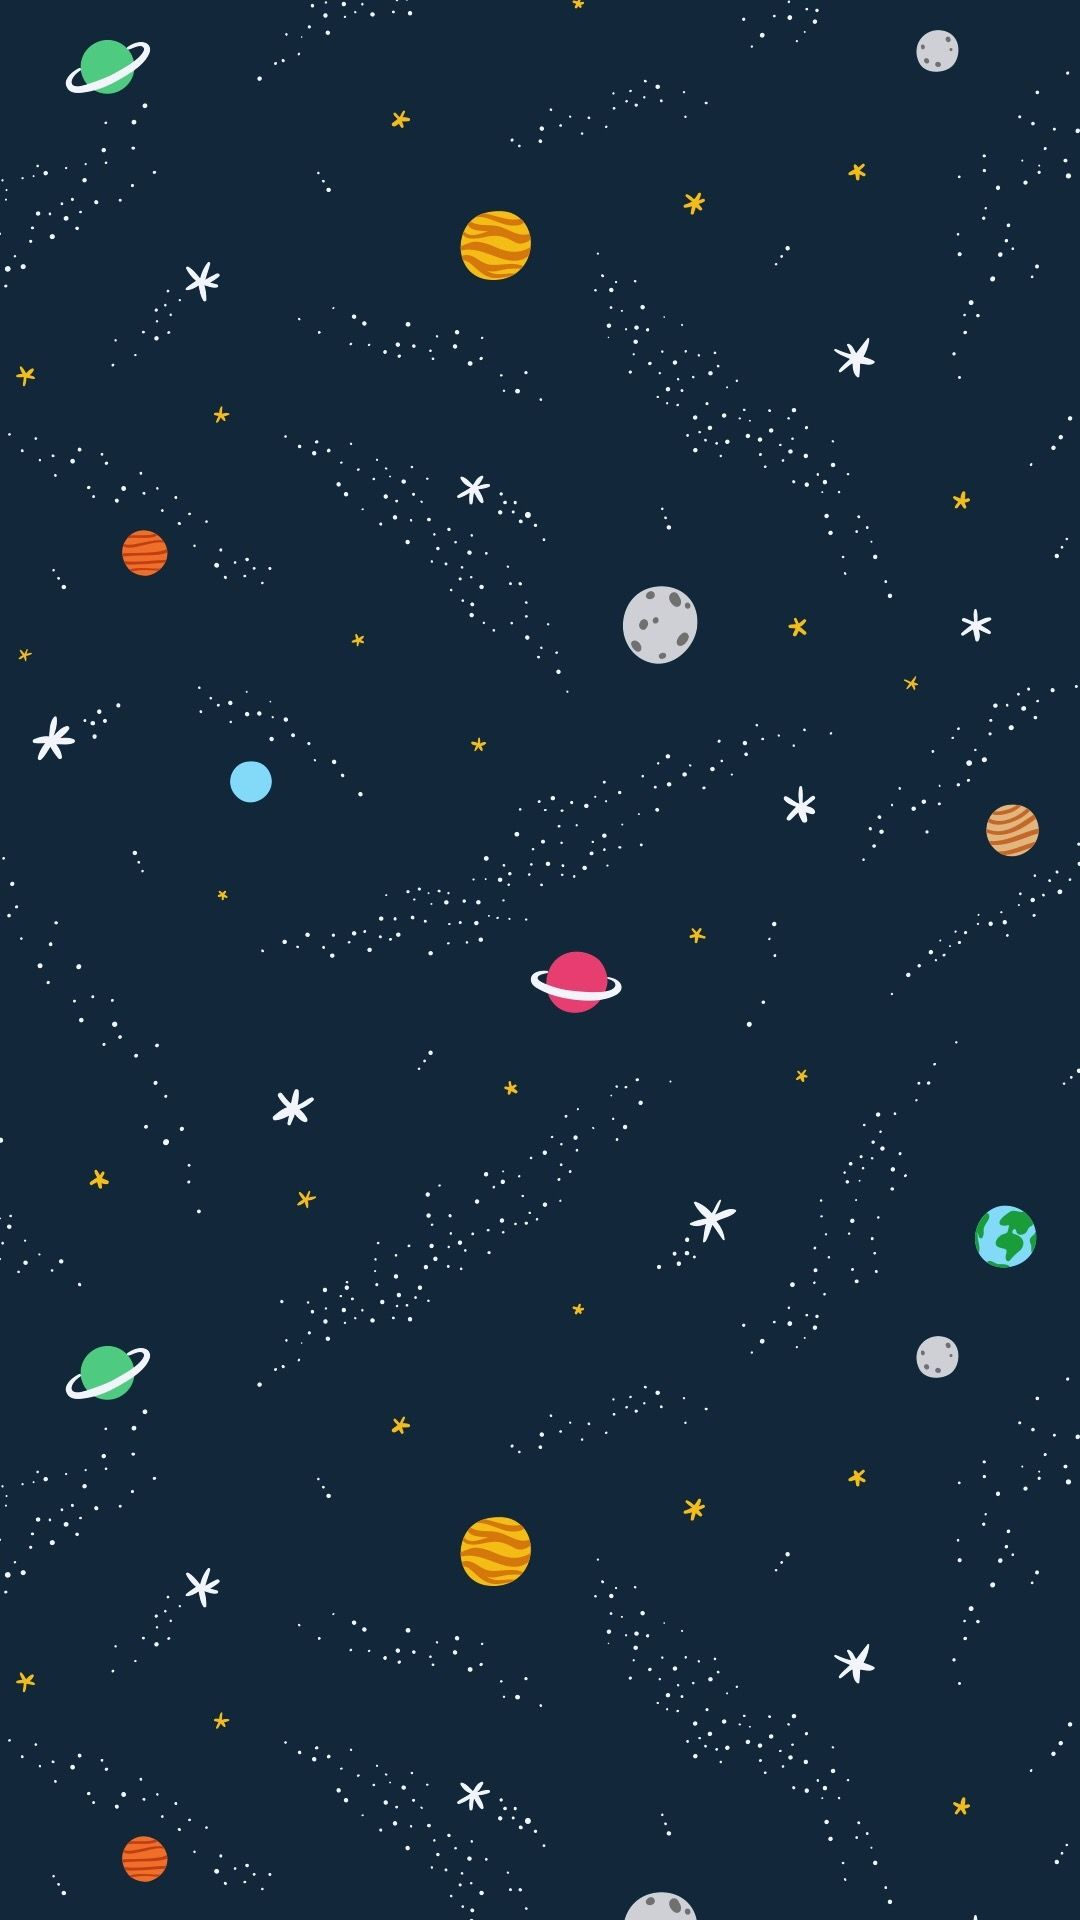 10 wallpapers com estilo tumblr para deixar seu celular muito space wallpaper iphoneandroid fostergingerpinterestmore pins like this one at fosterginger pinterest no pin limits voltagebd Images